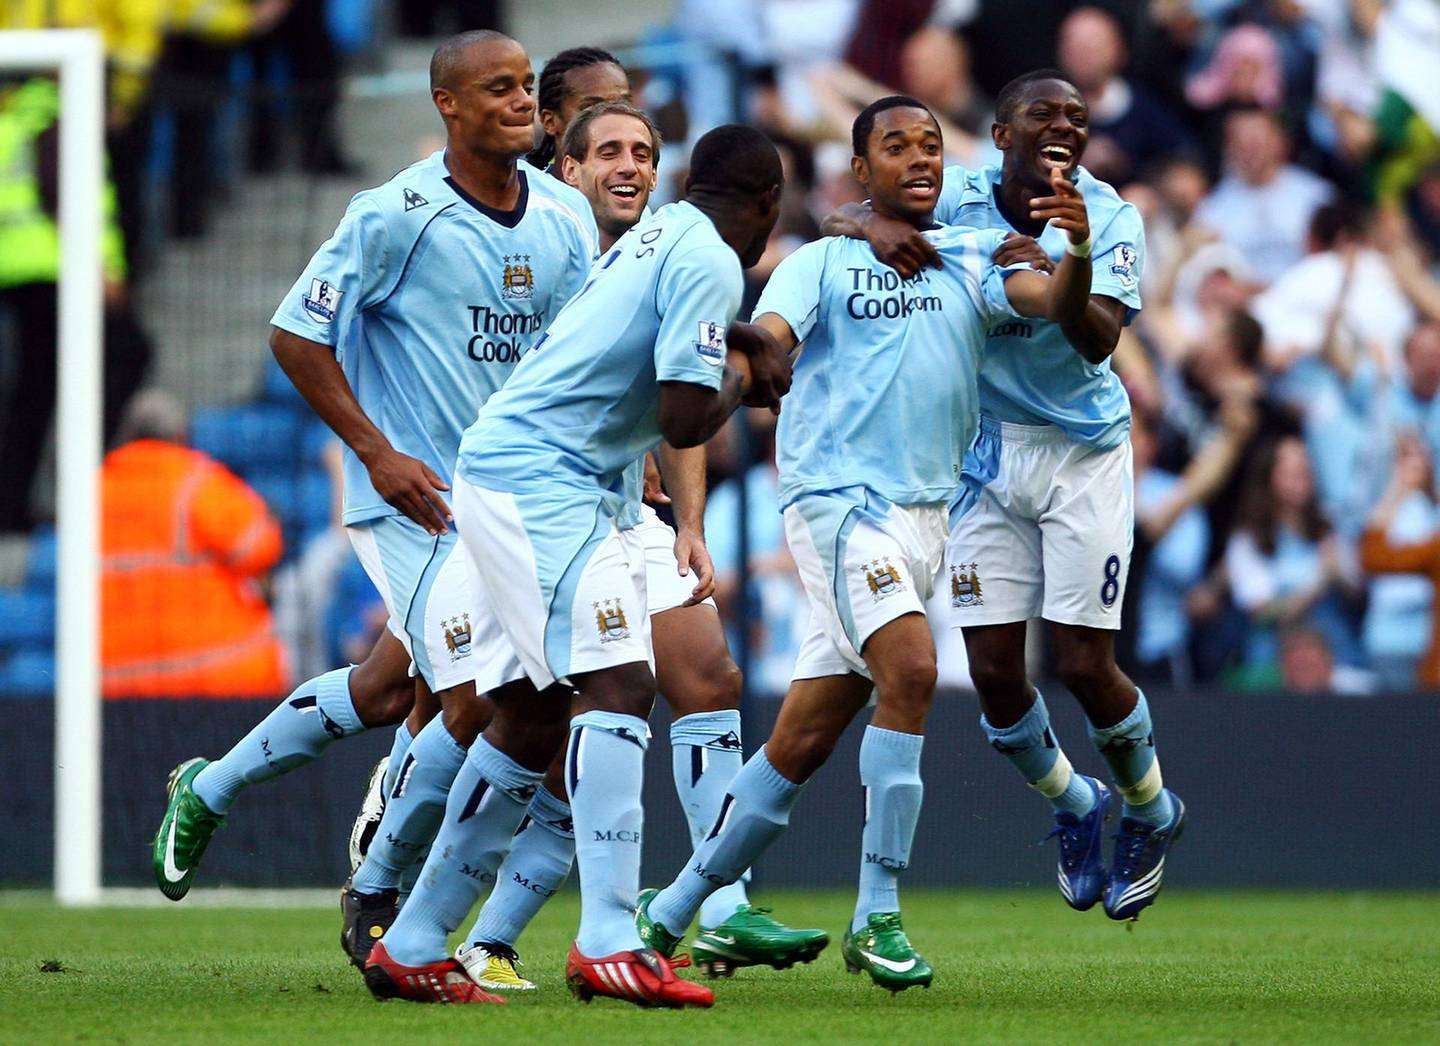 MANCHESTER, UNITED KINGDOM - SEPTEMBER 13:  Robinho of Manchester is mobbed by team mates after scoring the first goal of the game during the Barclays Premier League match between Manchester City and Chelsea at The City of Manchester Stadium on September 13, 2008 in Manchester, England.  (Photo by Alex Livesey/Getty Images)